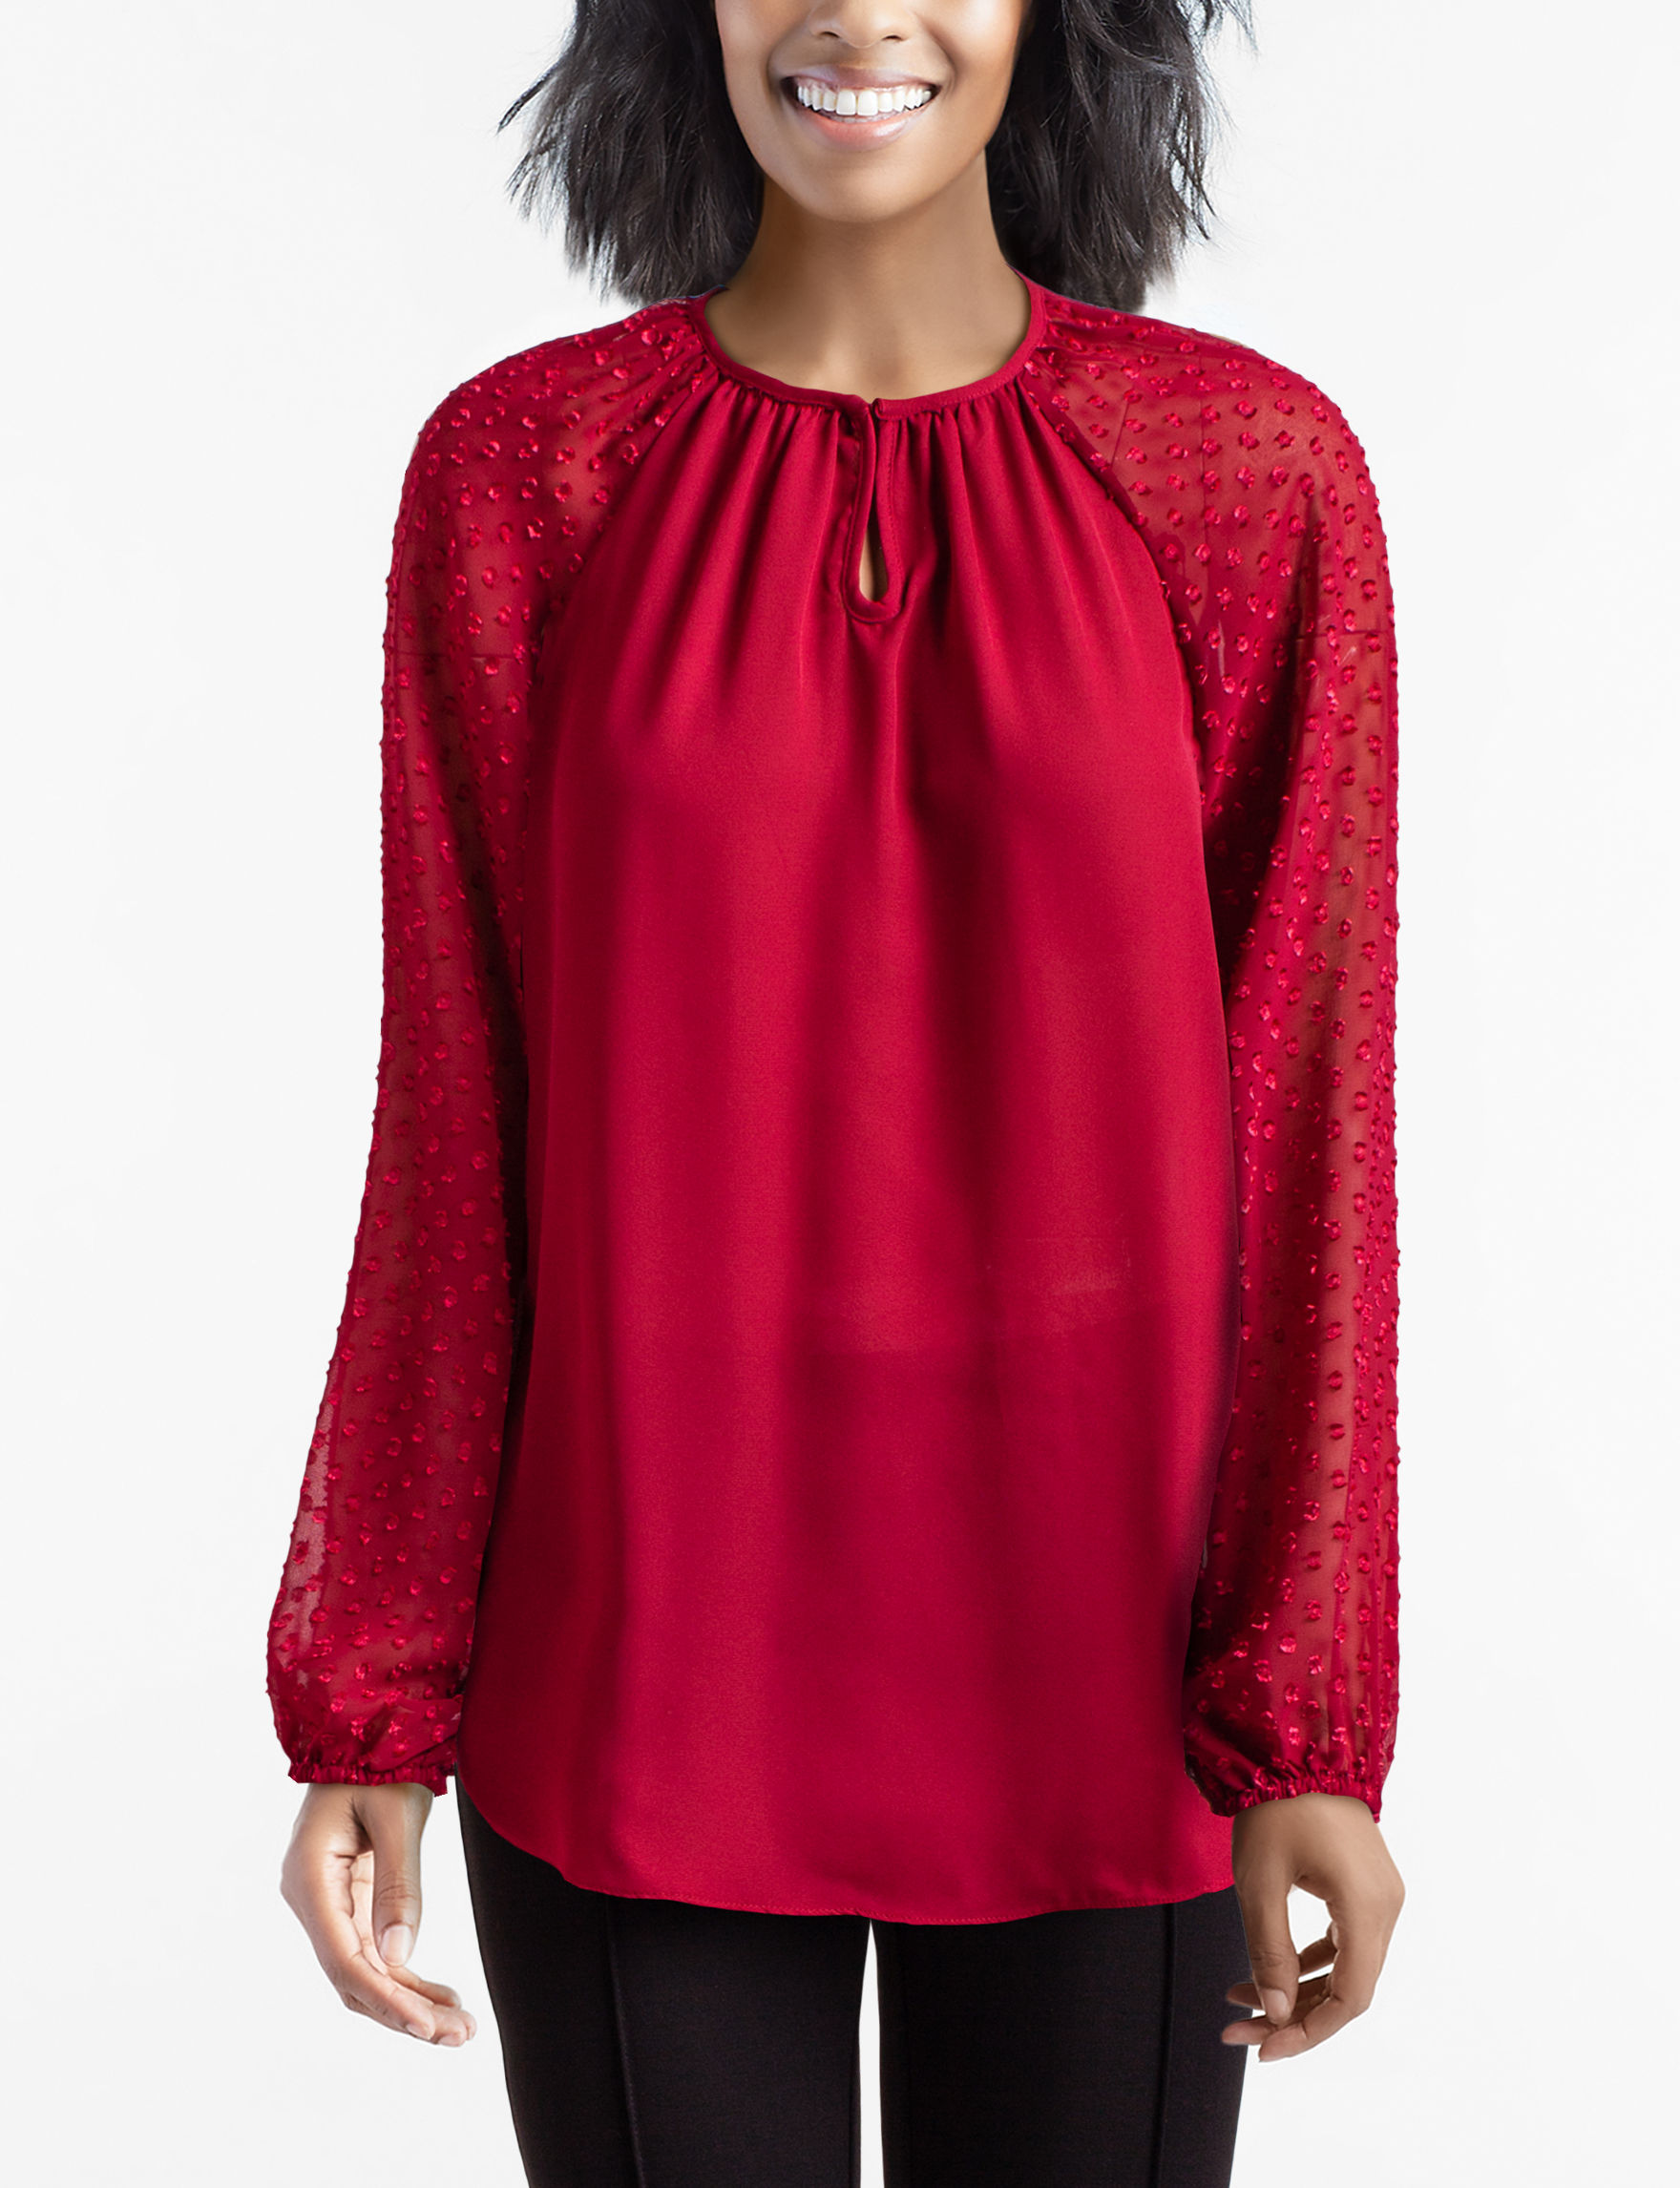 Daisy Fuentes Red Shirts & Blouses